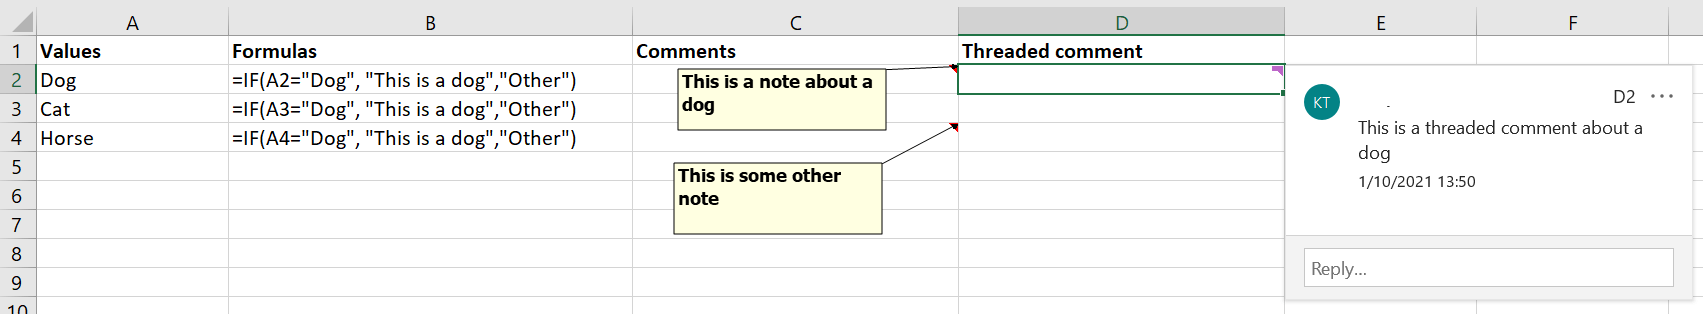 VBA Range Find using LookIn to search in Values, Formulas, Notes or Threaded Comments